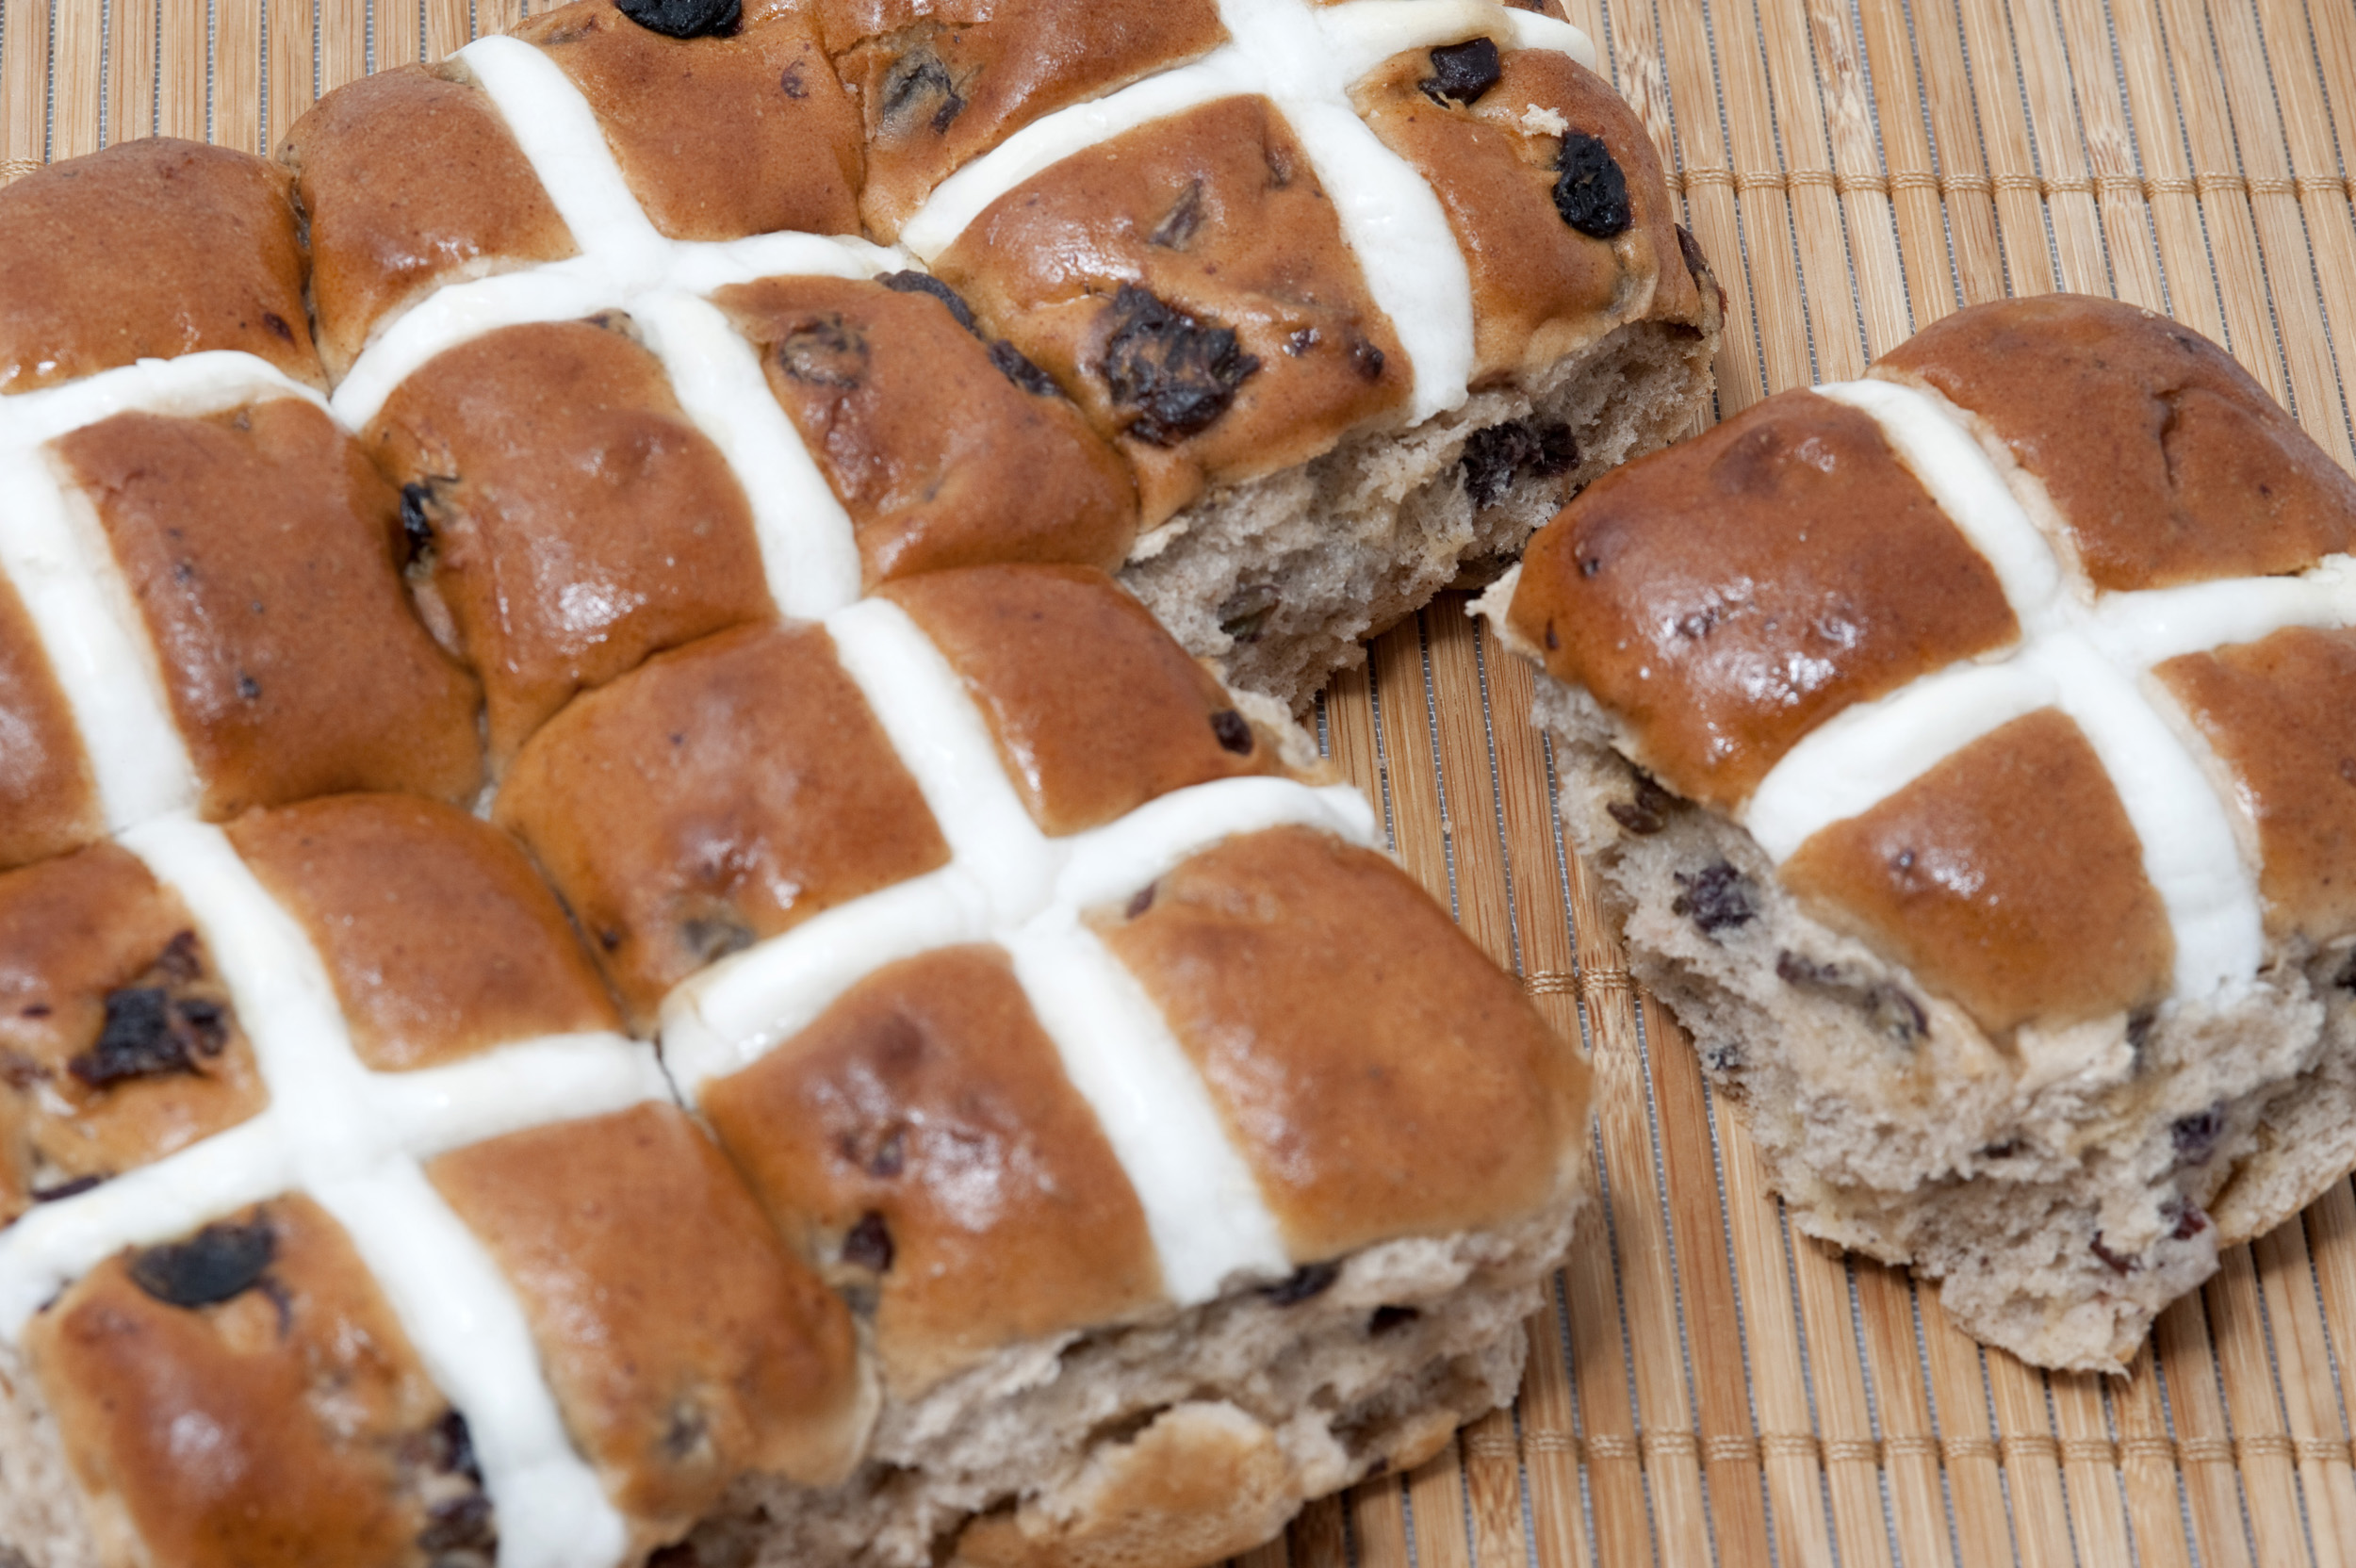 fresh_hotcross_buns.jpg - A freshly baked batch of Hot Cross Buns from an overhead perspective showing the glazed symbolic Easter cross